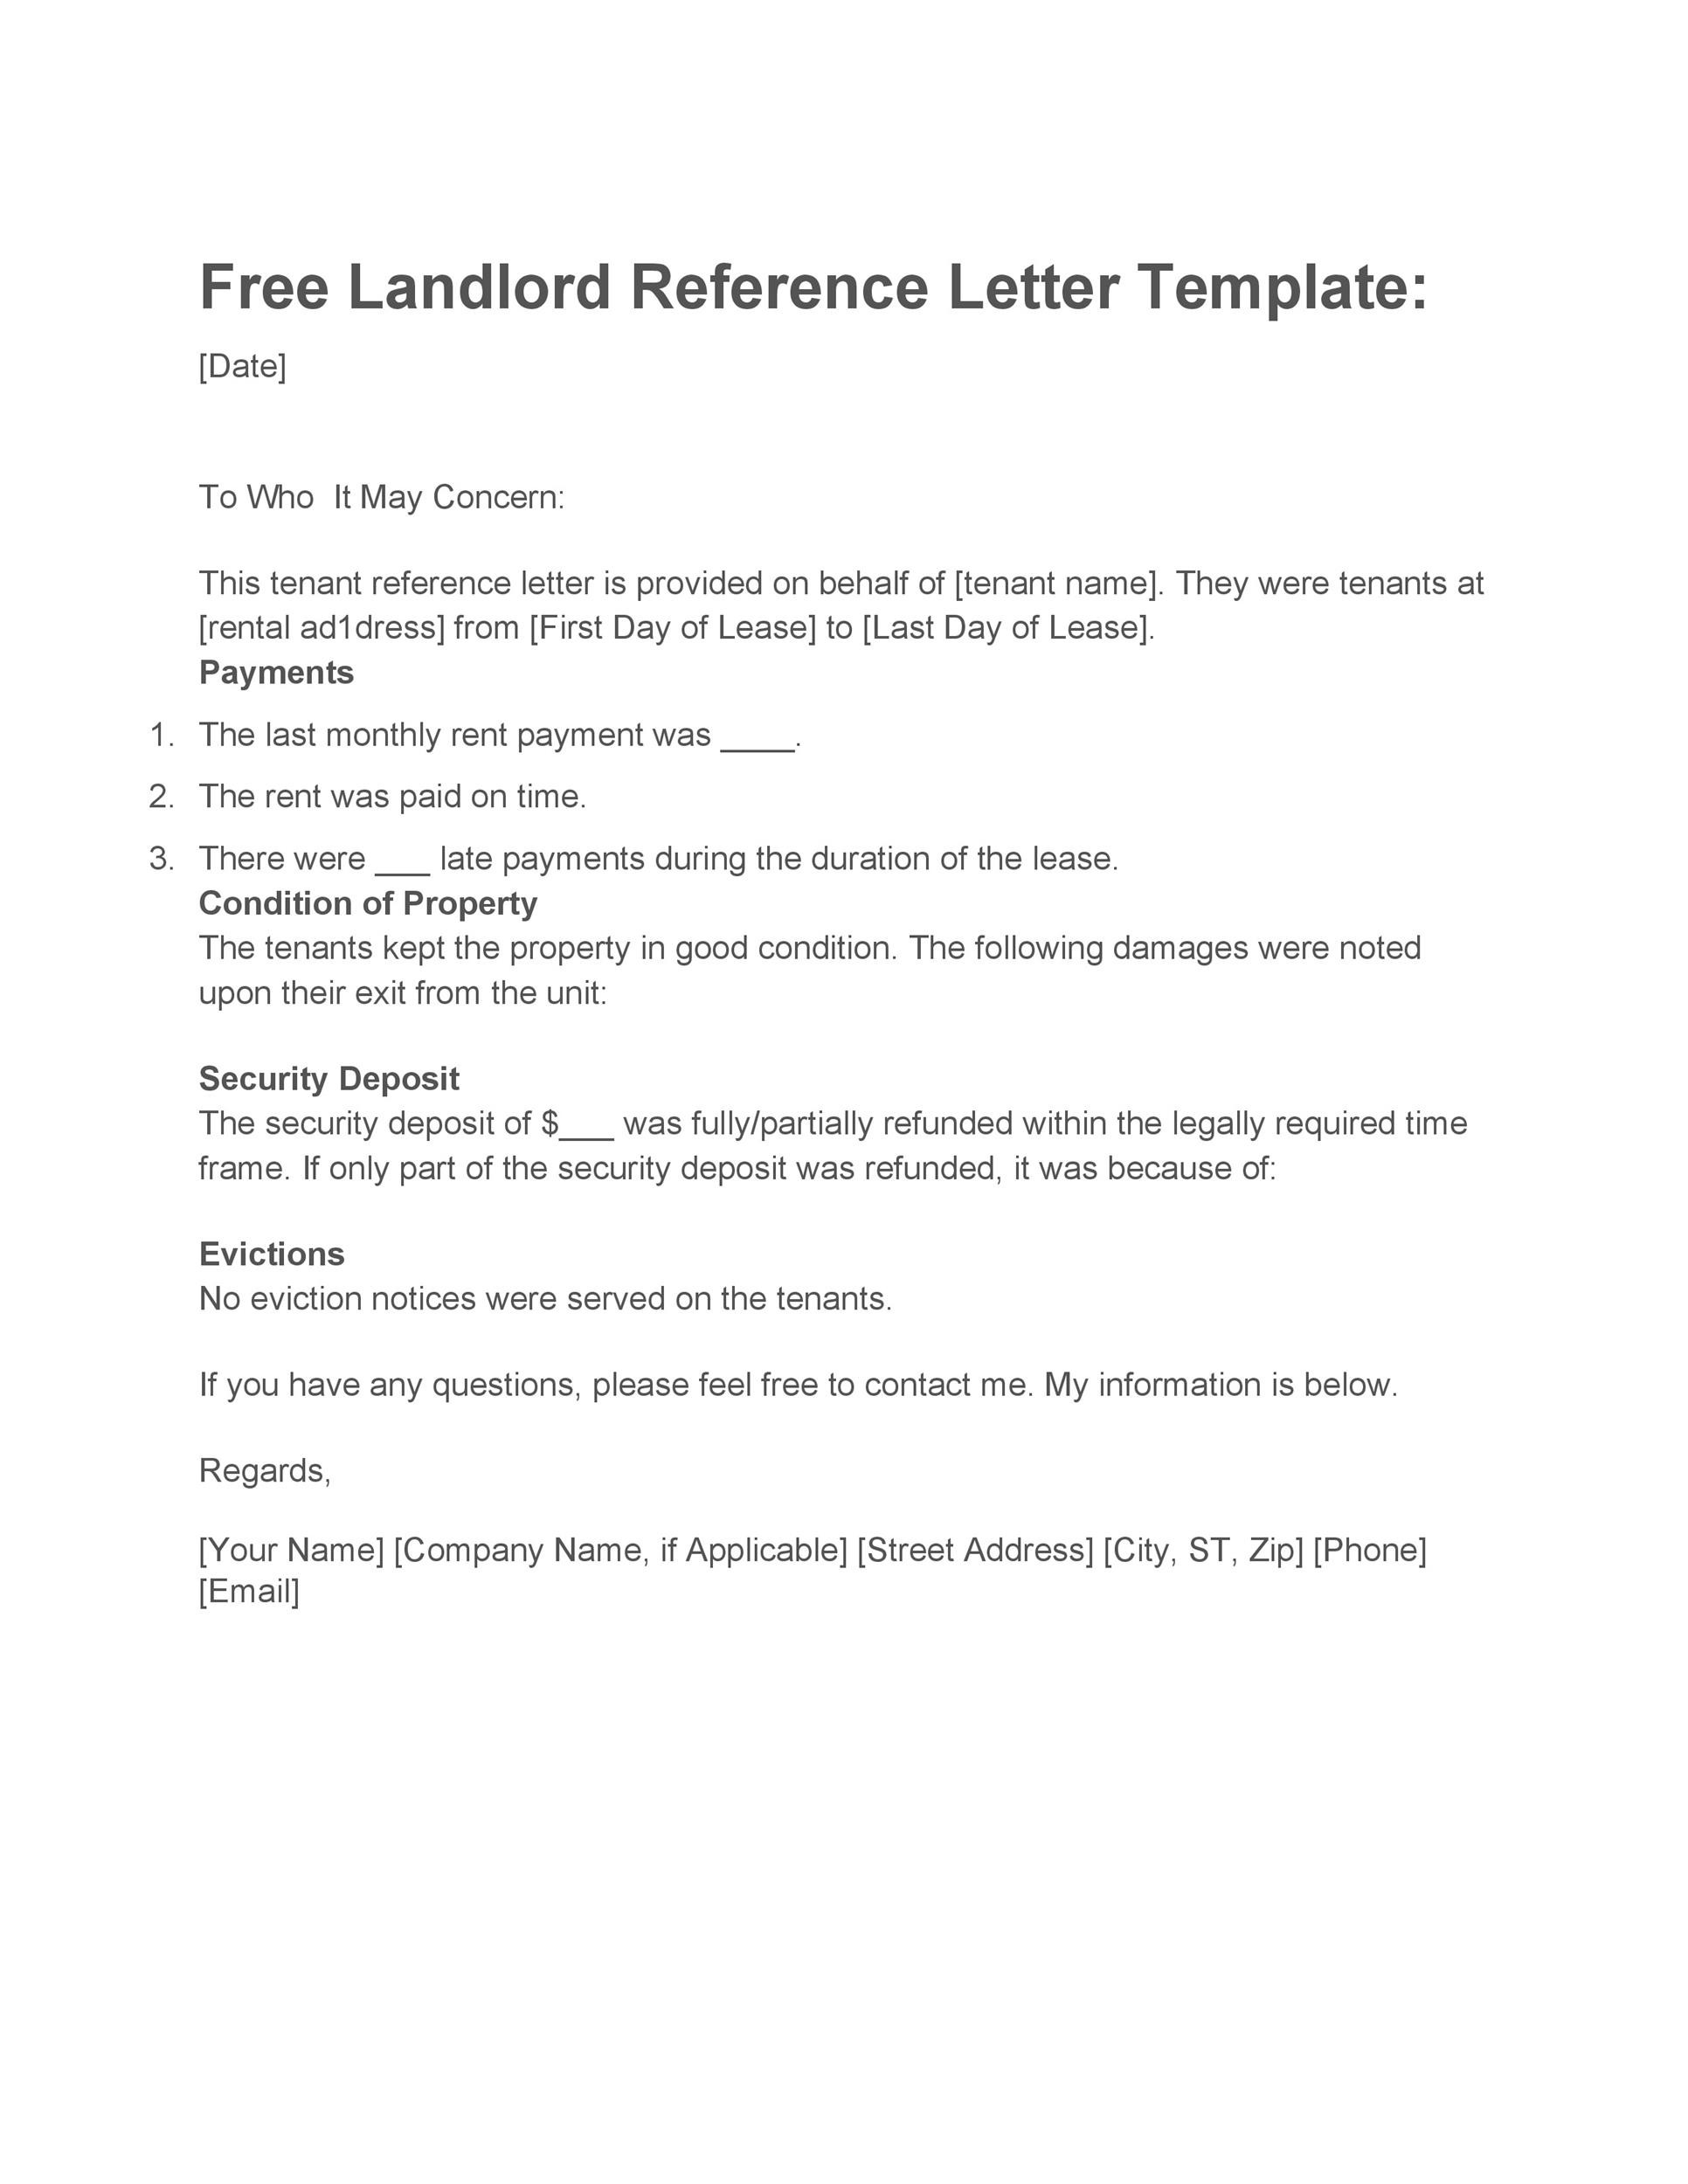 Free landlord reference letter 25